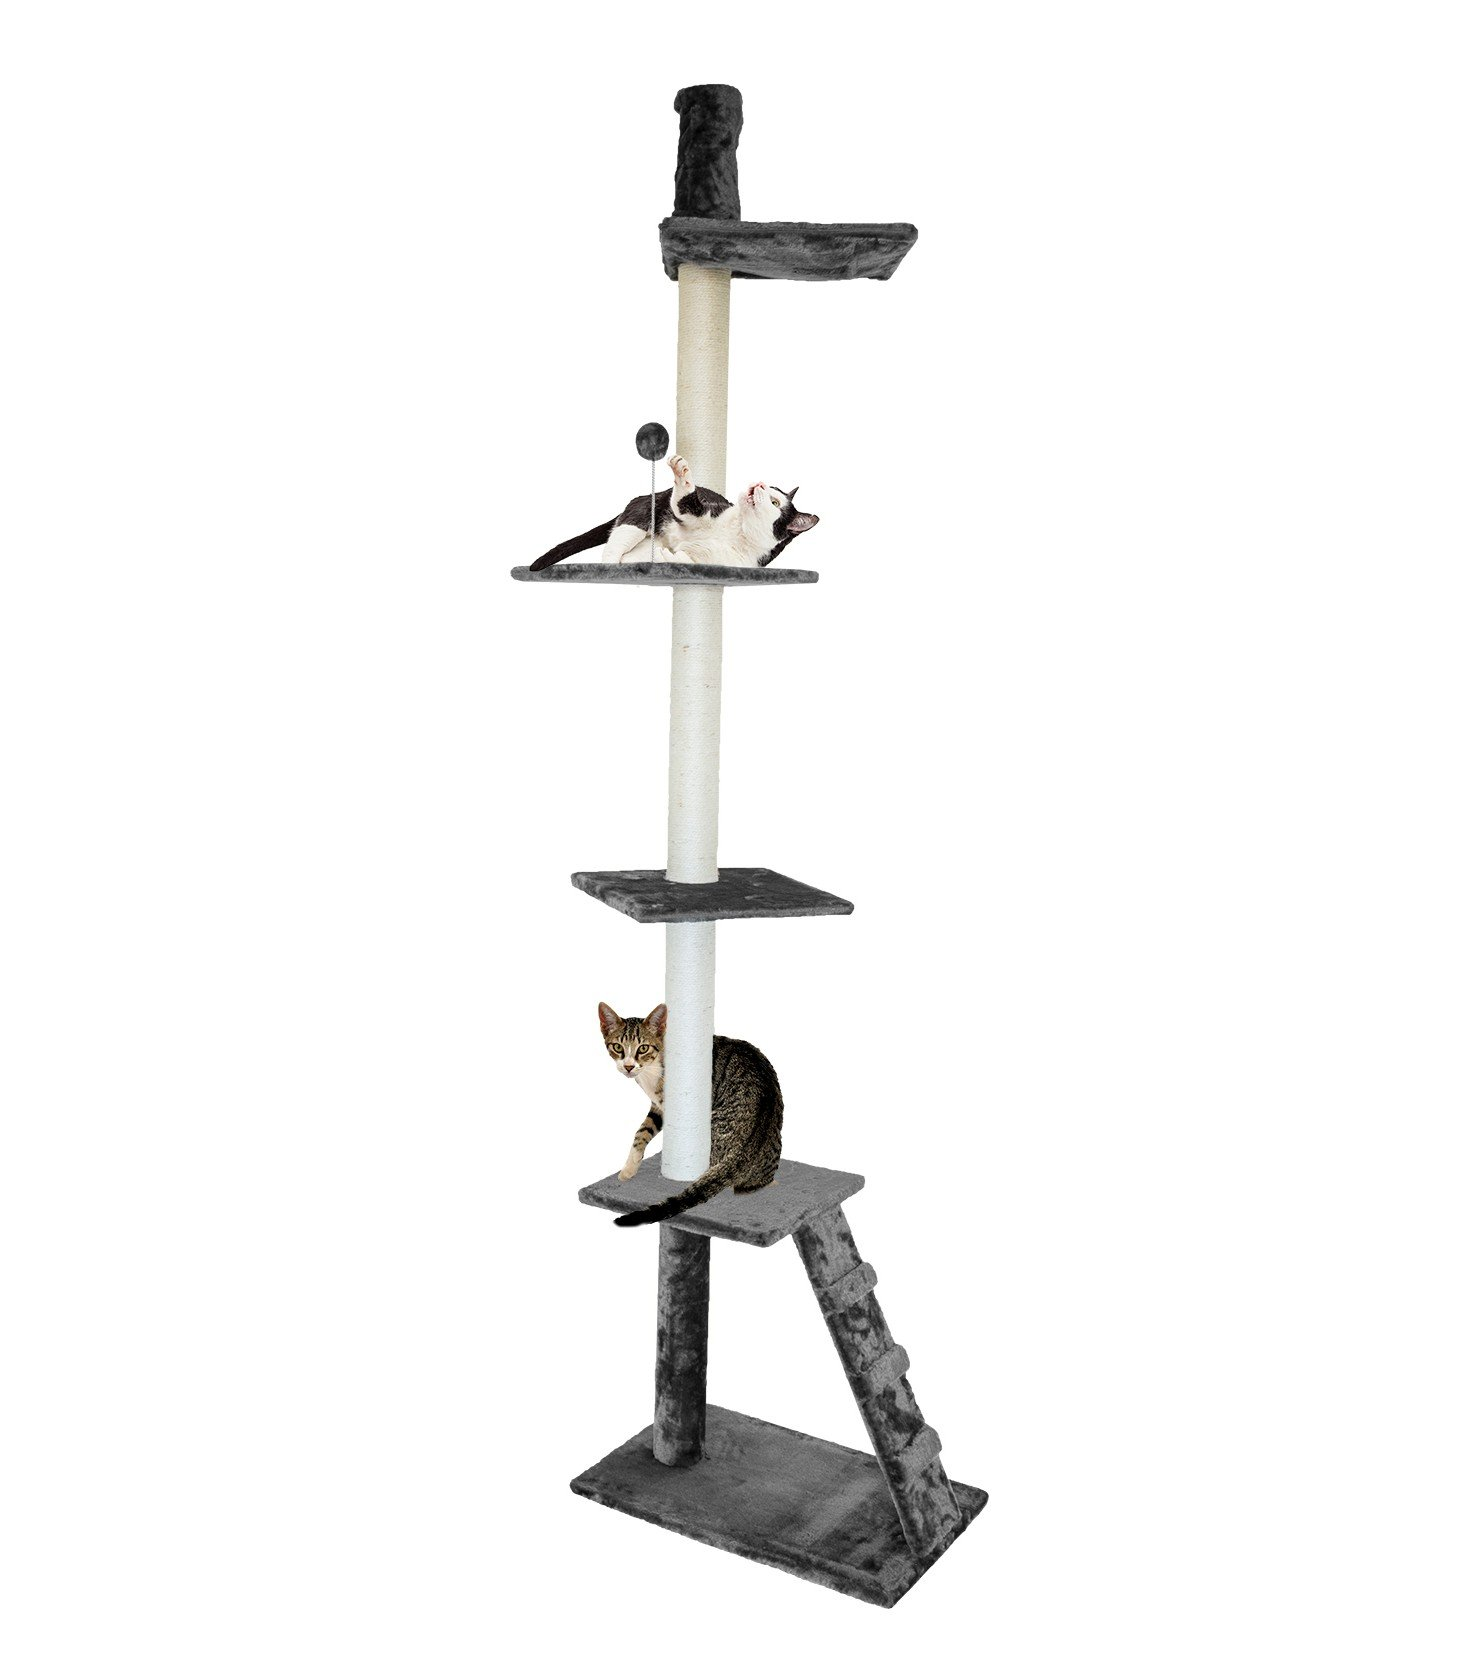 Furhaven Tiger Tough Cat Tree House Furniture for Cats and Kittens, Ladder Playground, Gray